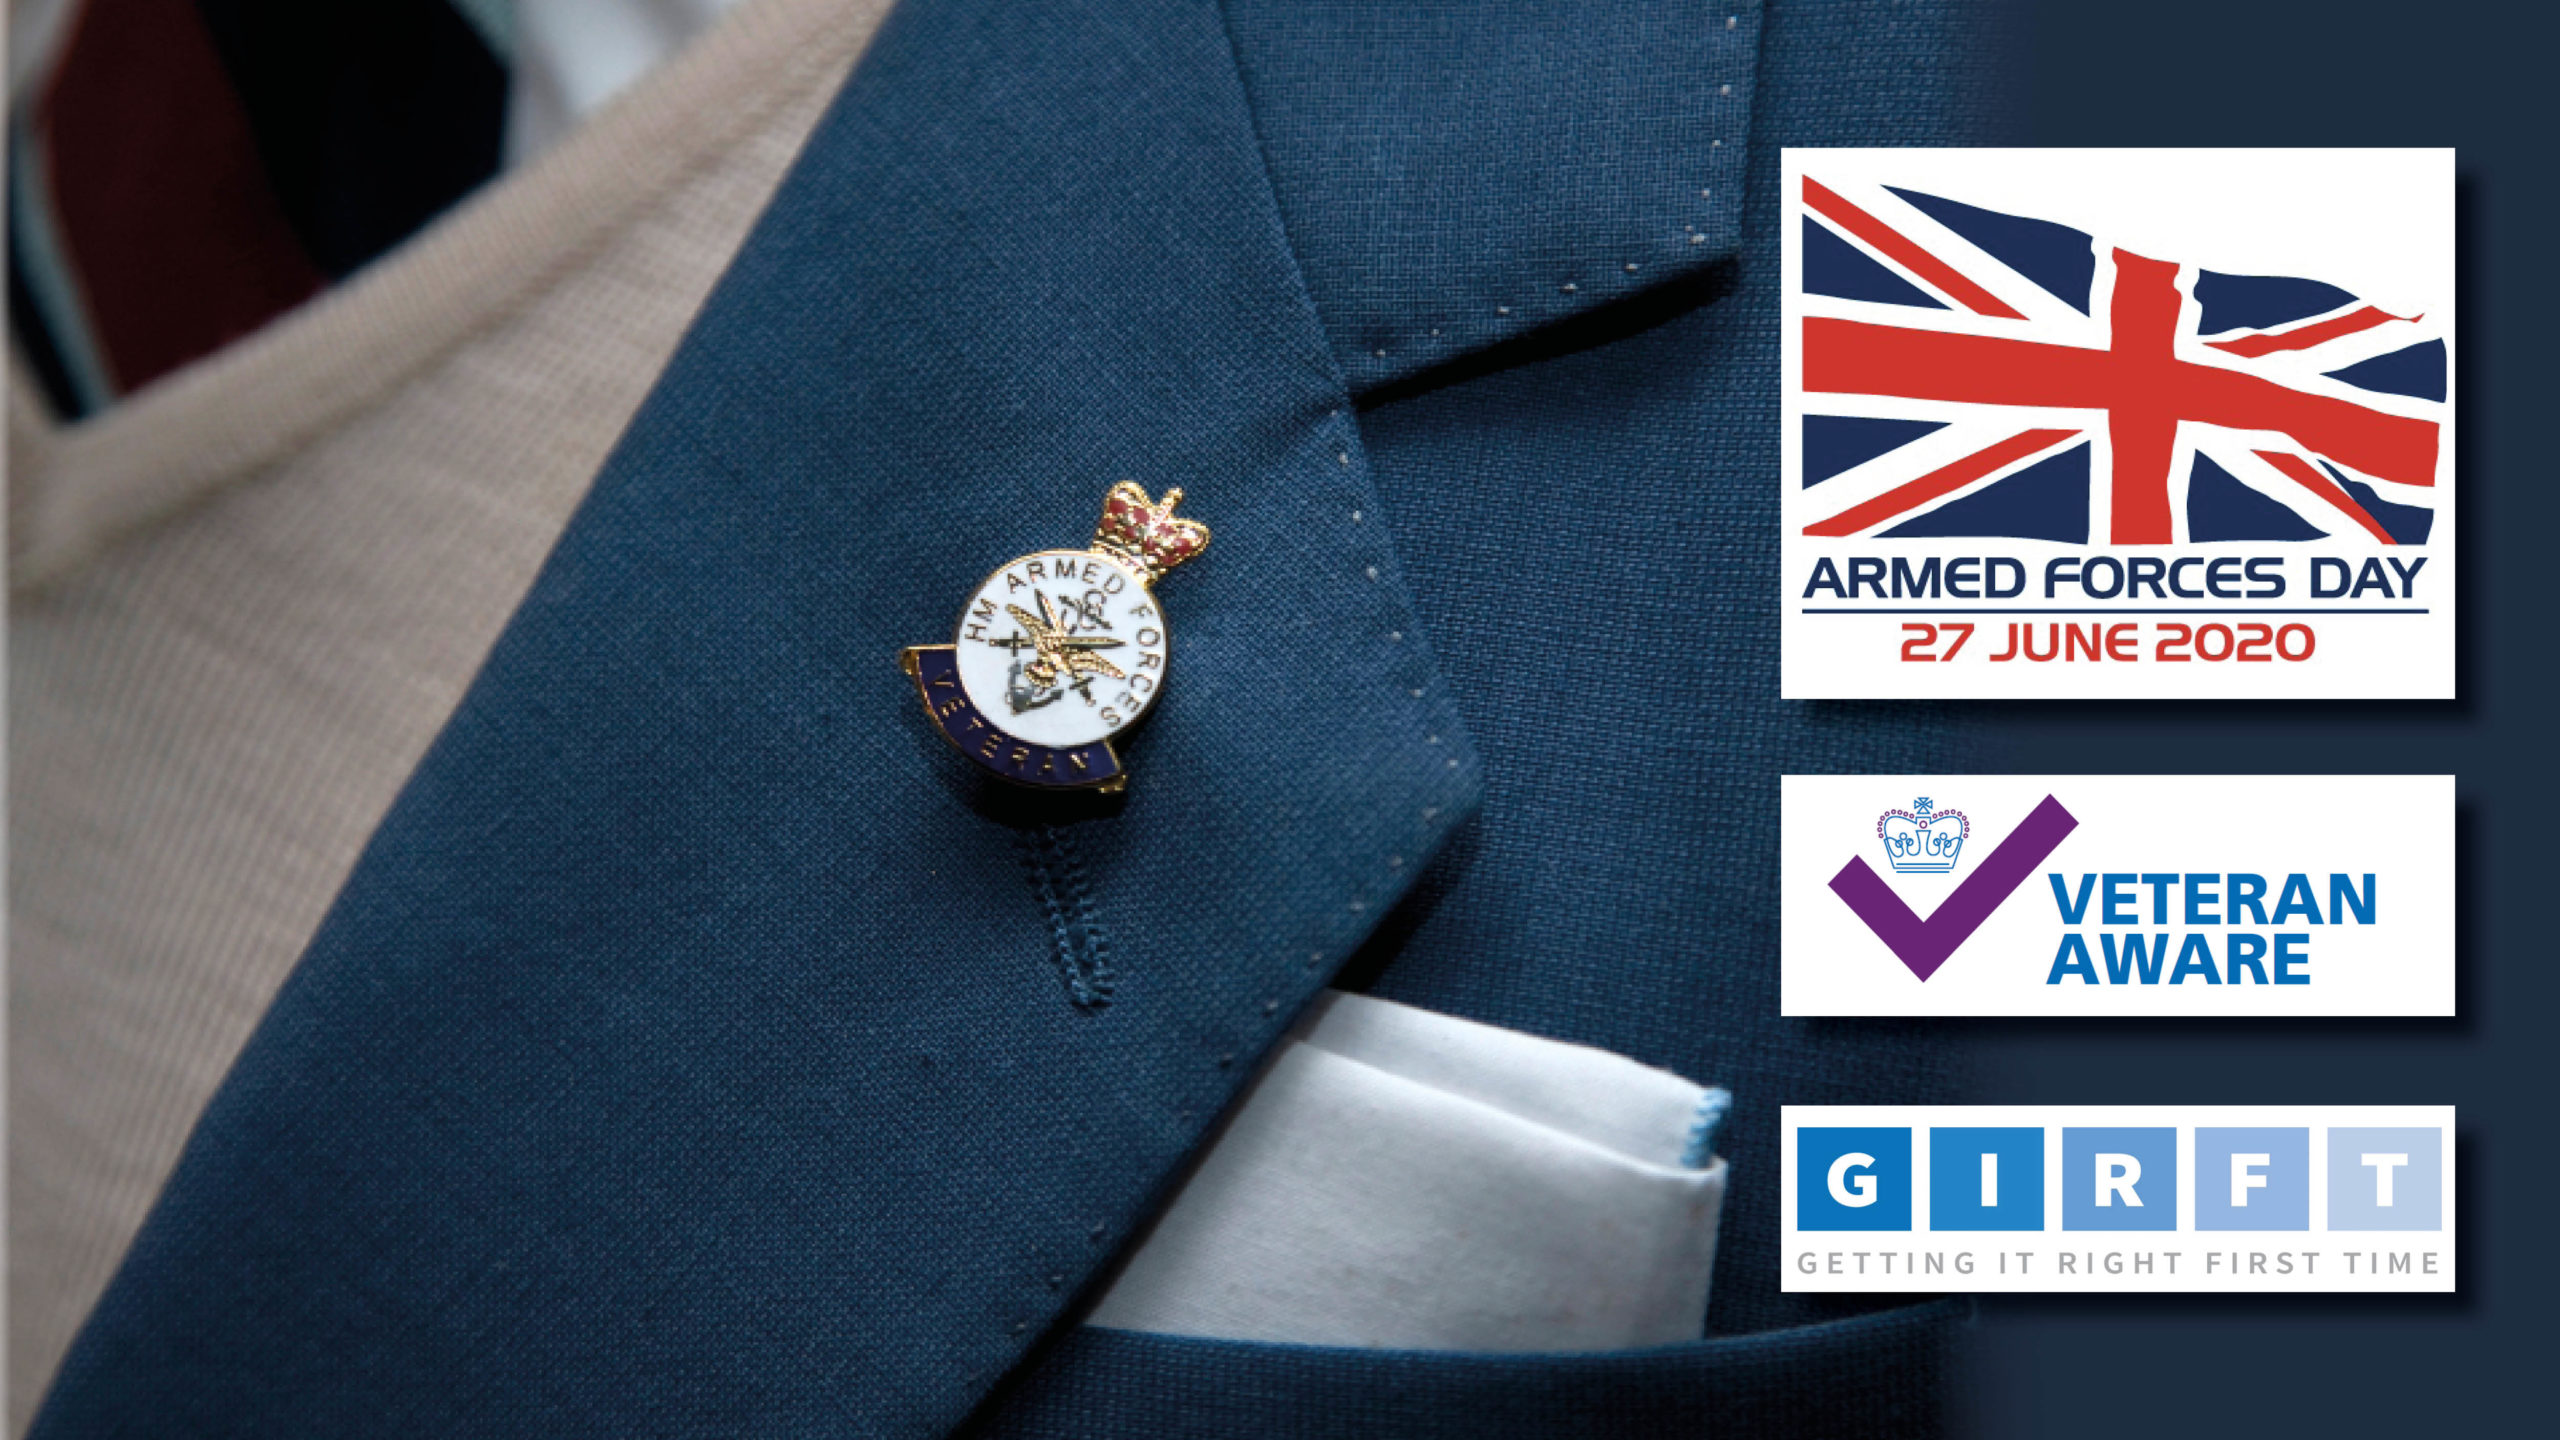 Generic image of a Forces veteran with logos for Armed Forces Day, VCHA and GIRFT